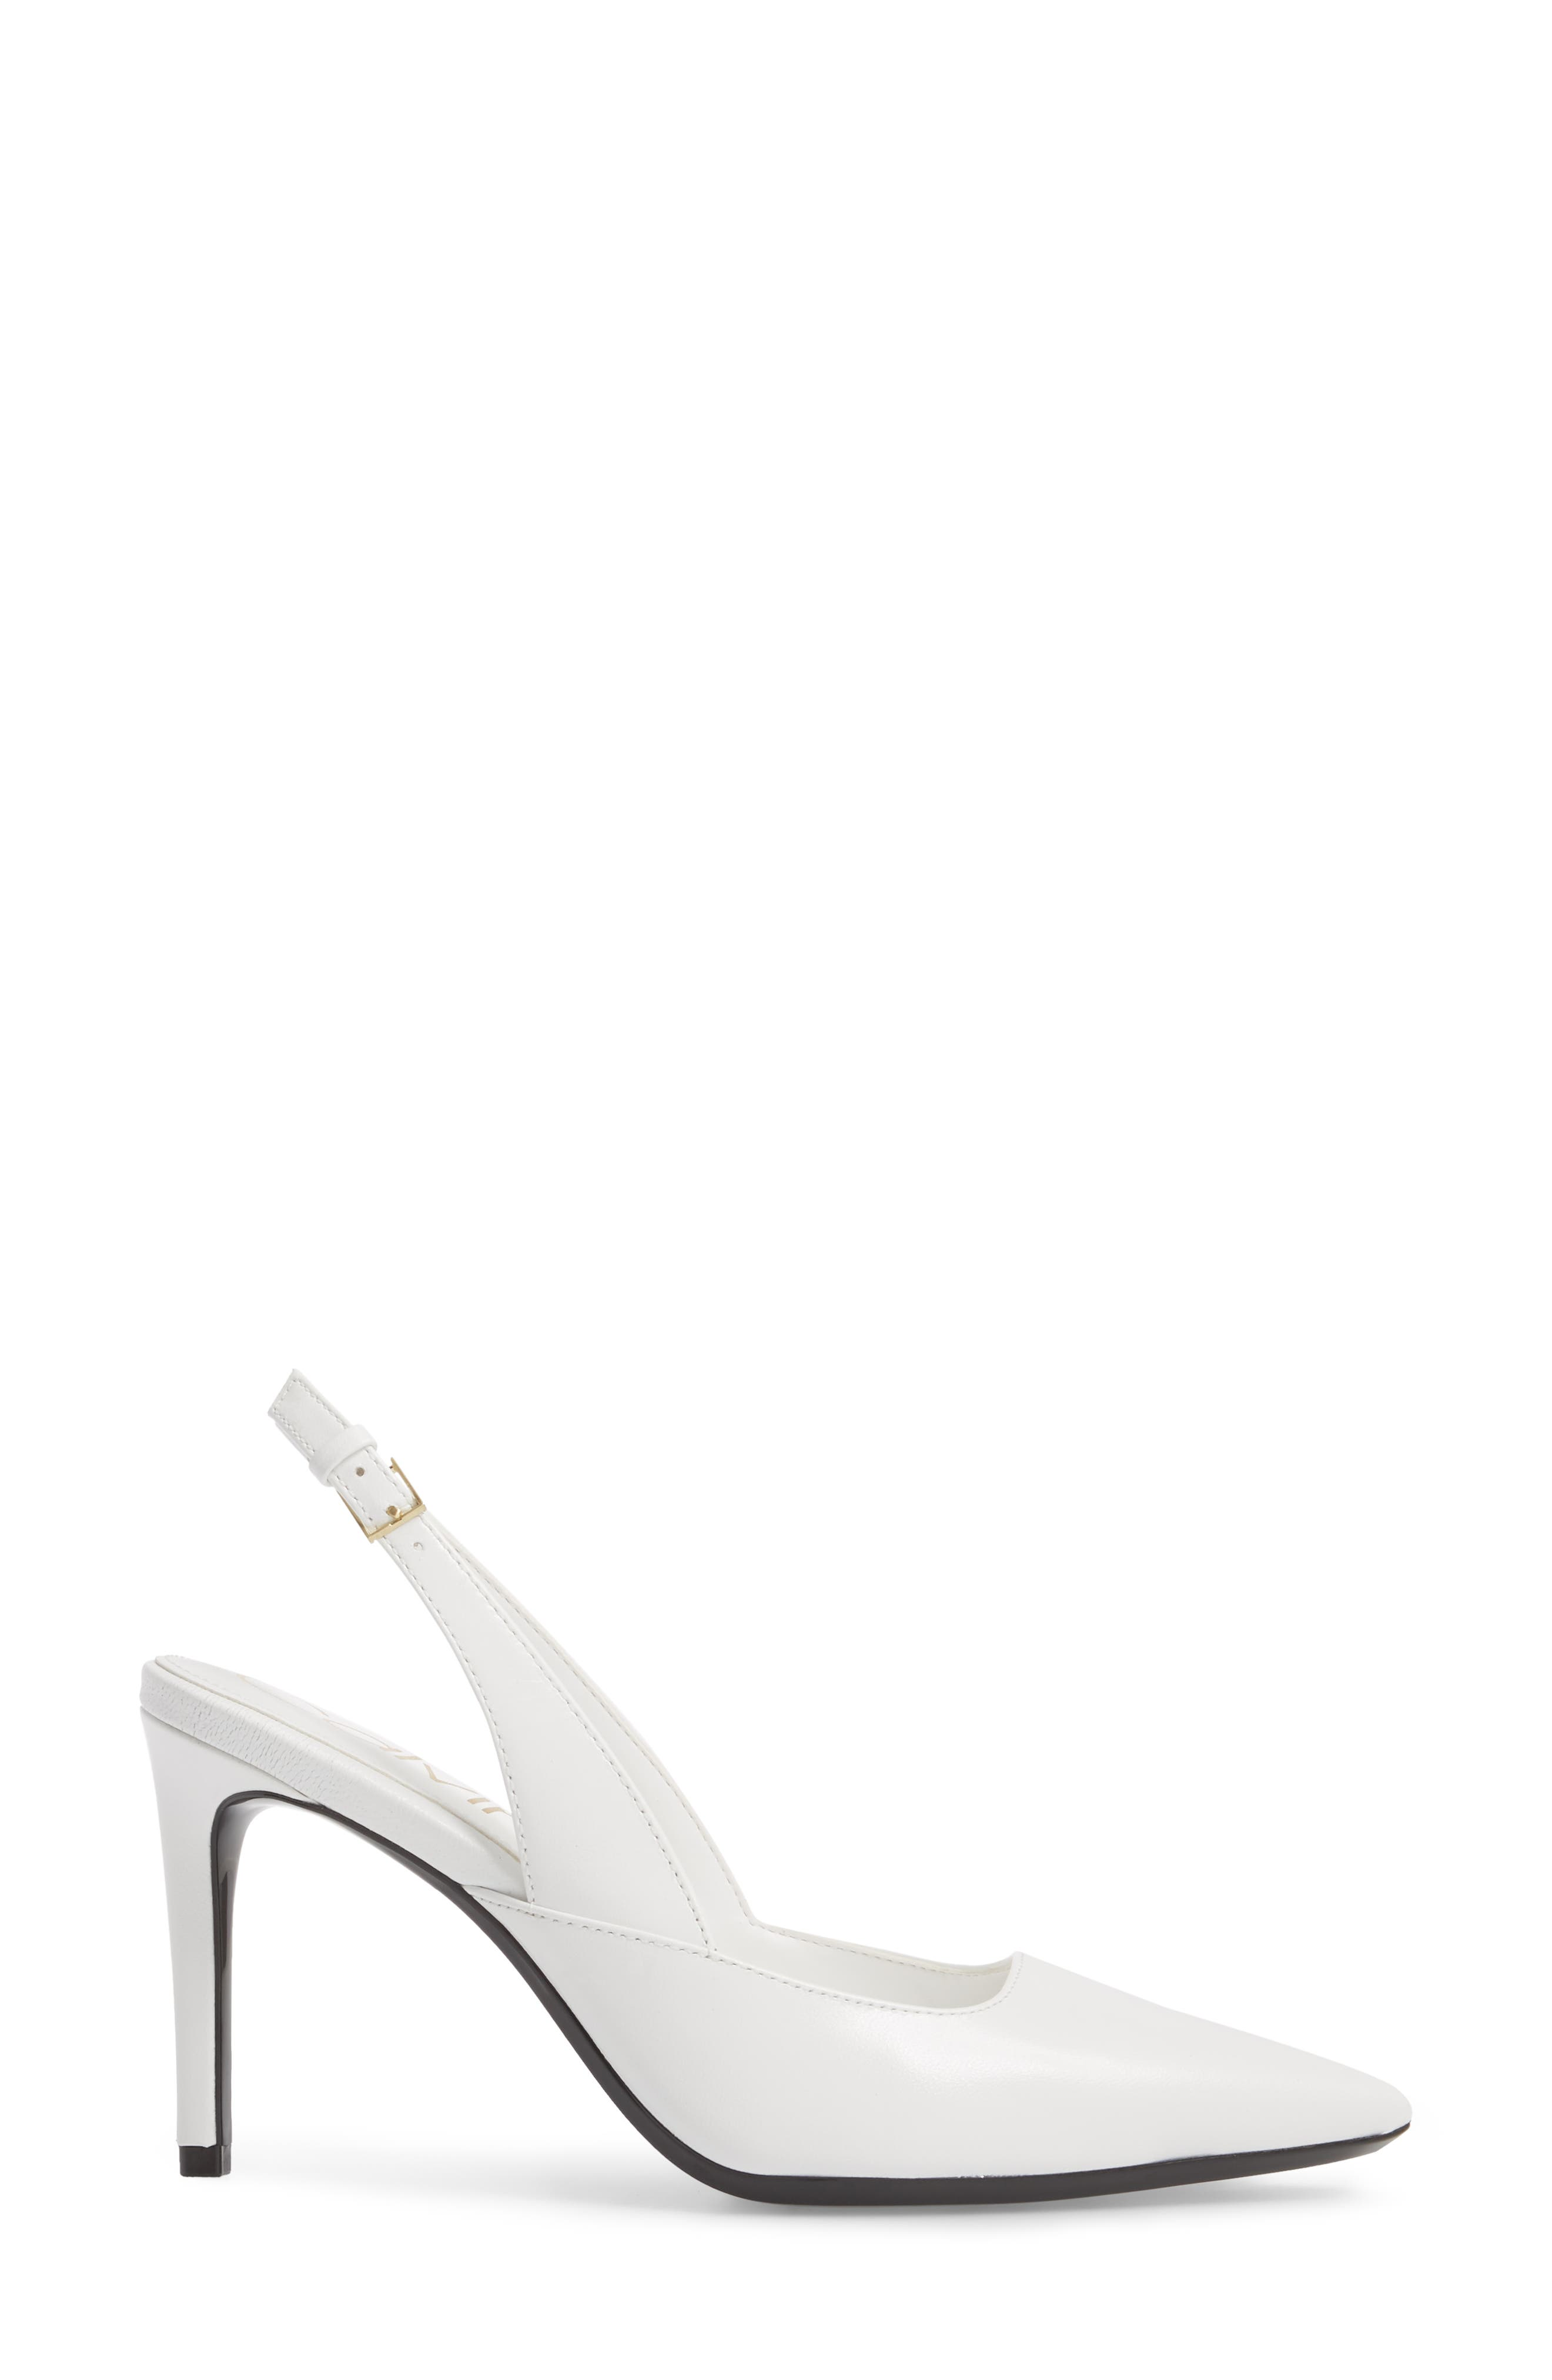 Rielle Slingback Pump,                             Alternate thumbnail 3, color,                             Platinum White Leather